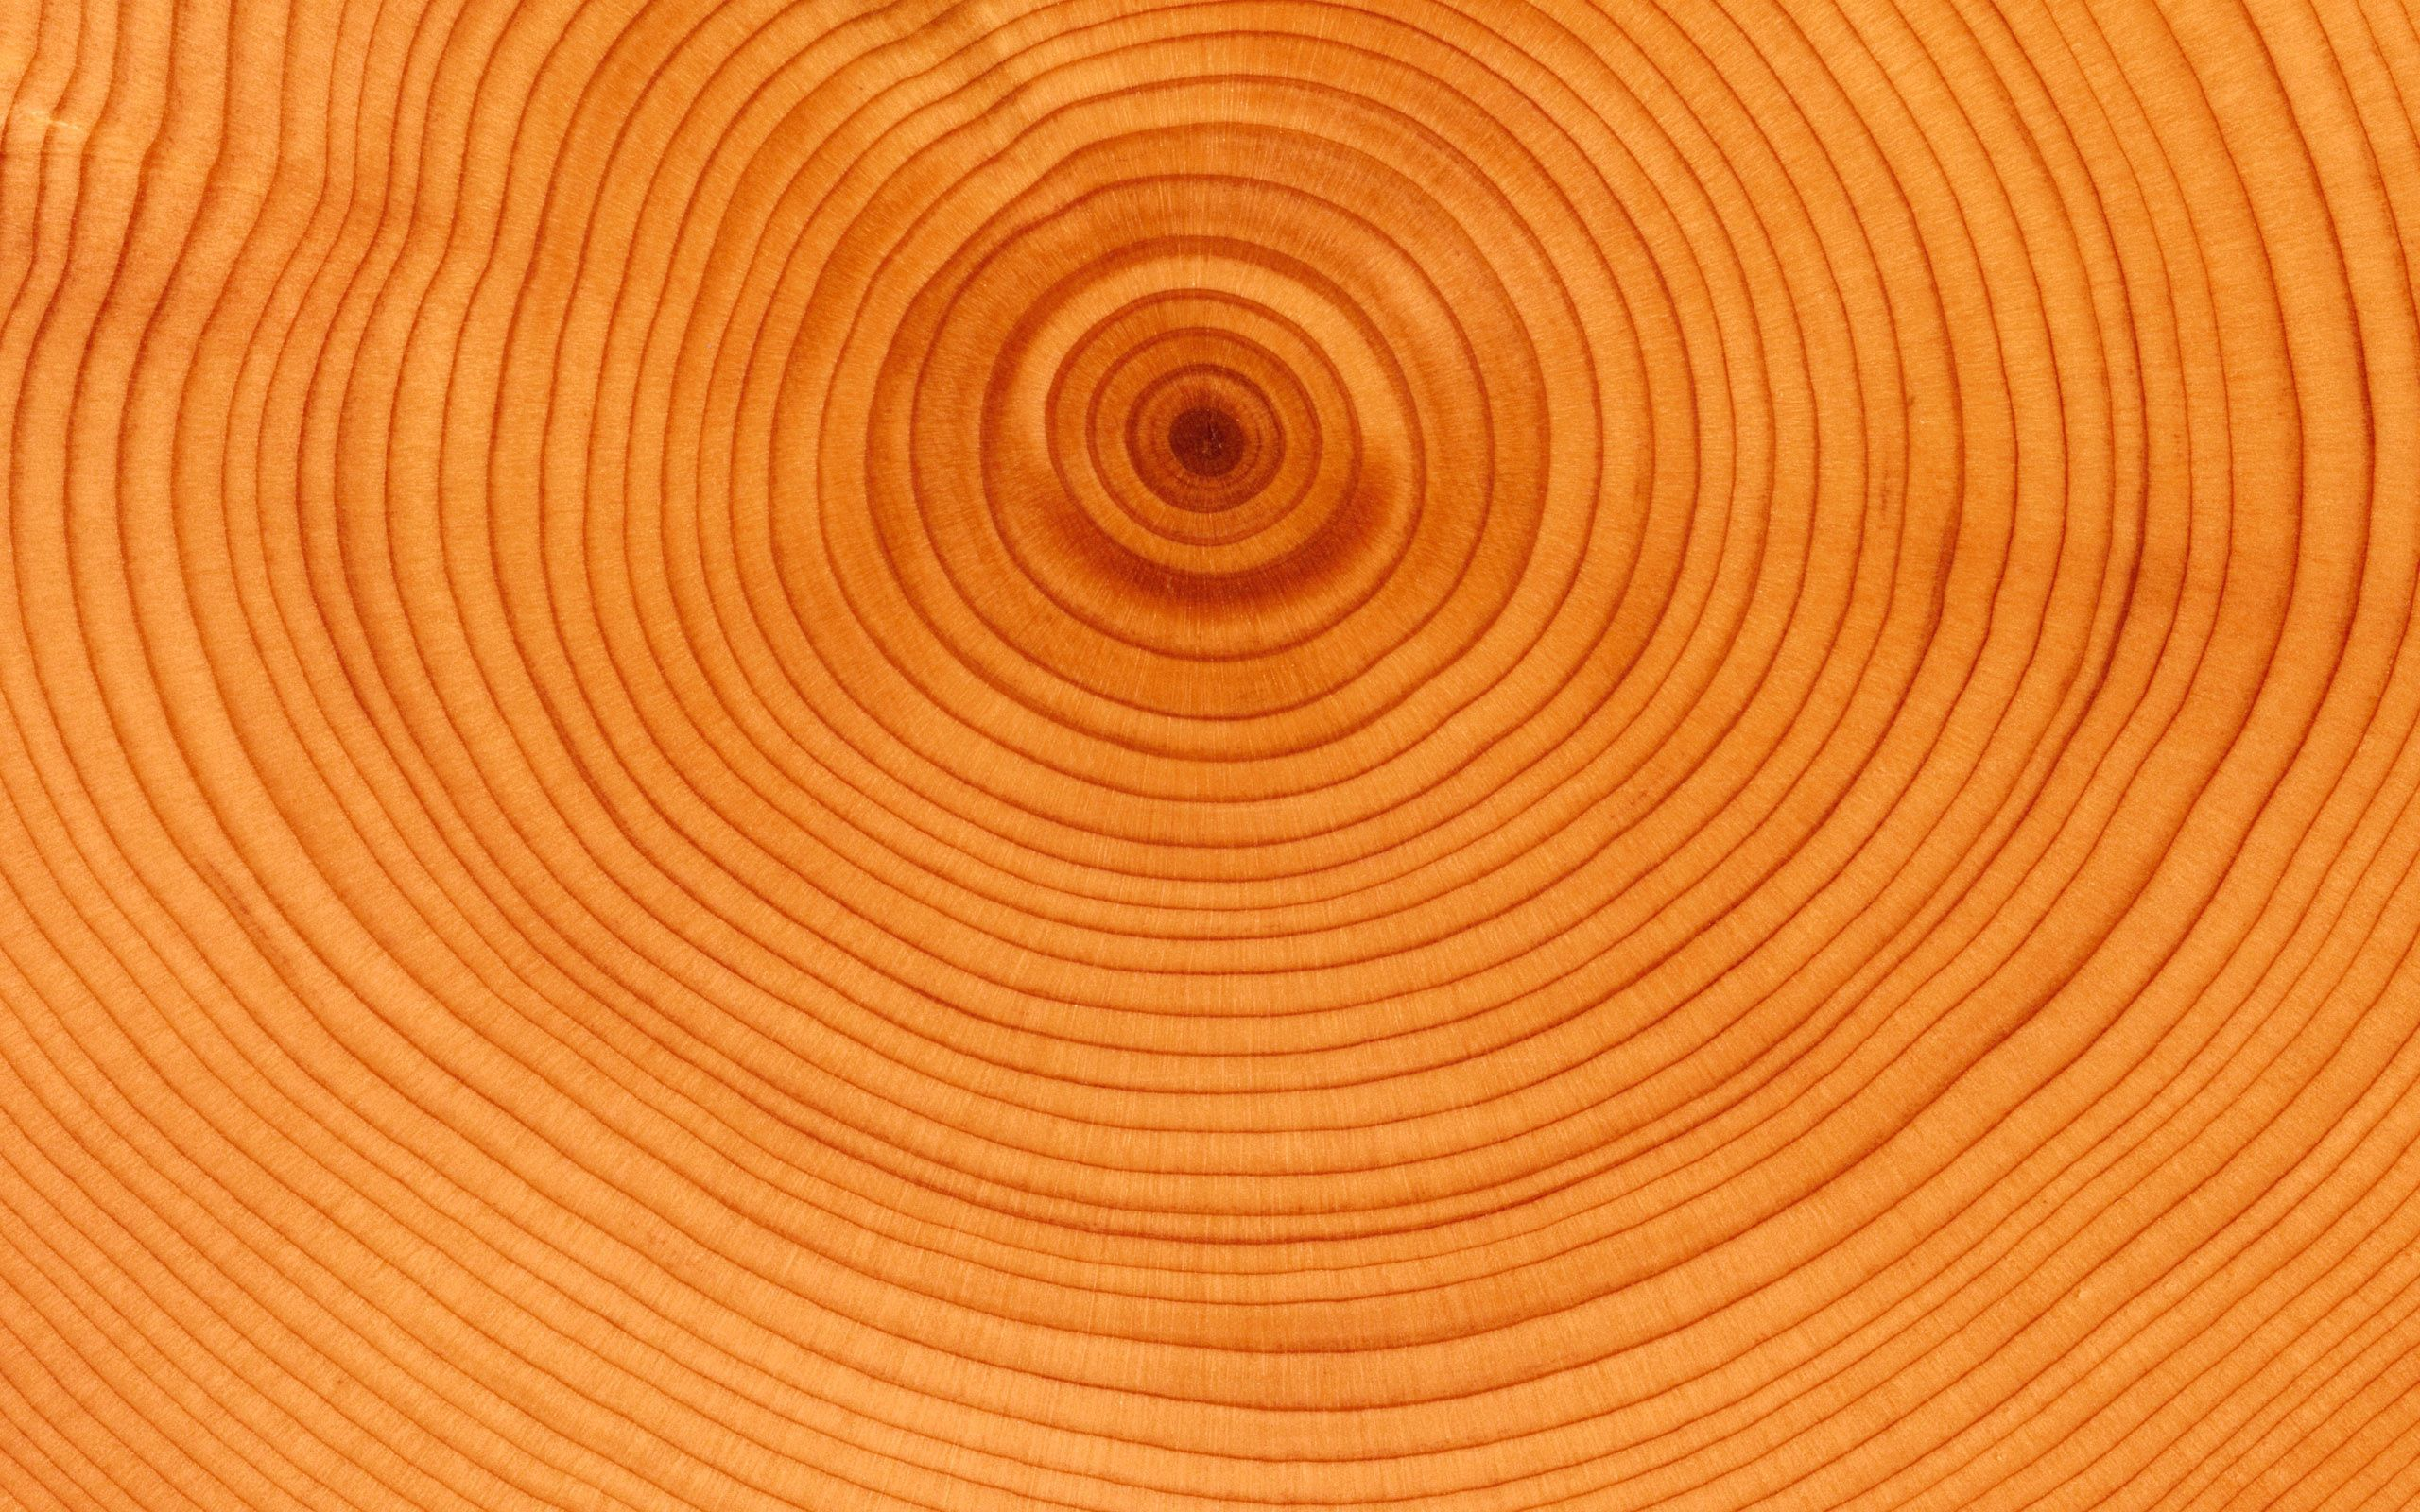 64413 download wallpaper Background, Circles, Wood, Tree, Texture, Textures, Slice, Section, Trunk screensavers and pictures for free